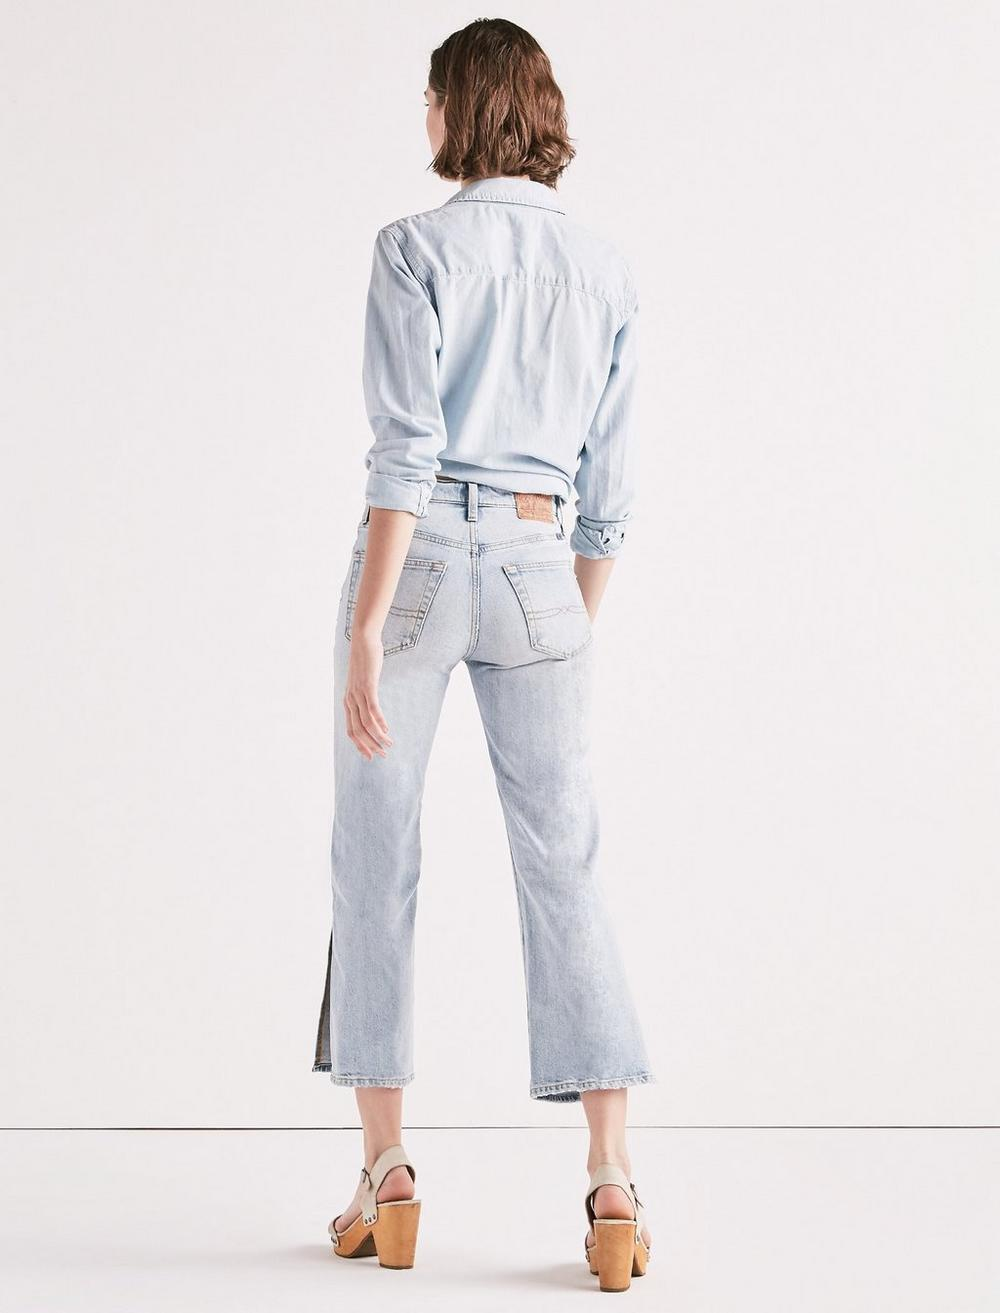 LUCKY PINS HIGH RISE SIDE SLIT JEAN IN MIRA MAR, image 3